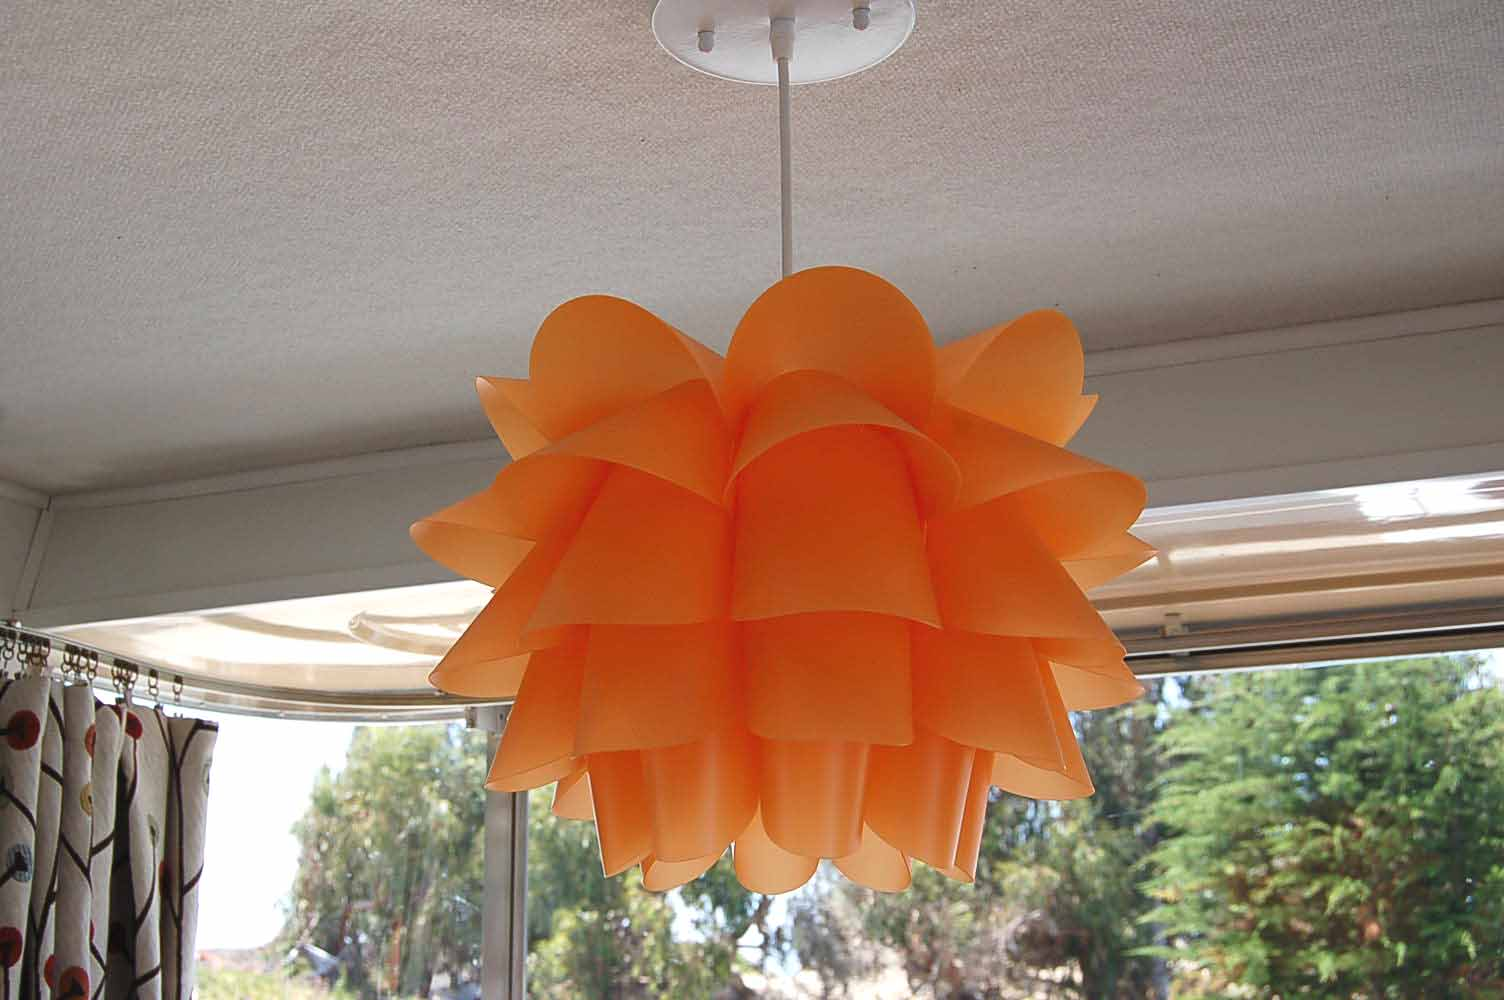 Vintage holiday house trailer pictures and history from awesome orange plastic ruffled ceiling light fixture 24ft vintage 1961 holiday house trailer aloadofball Image collections